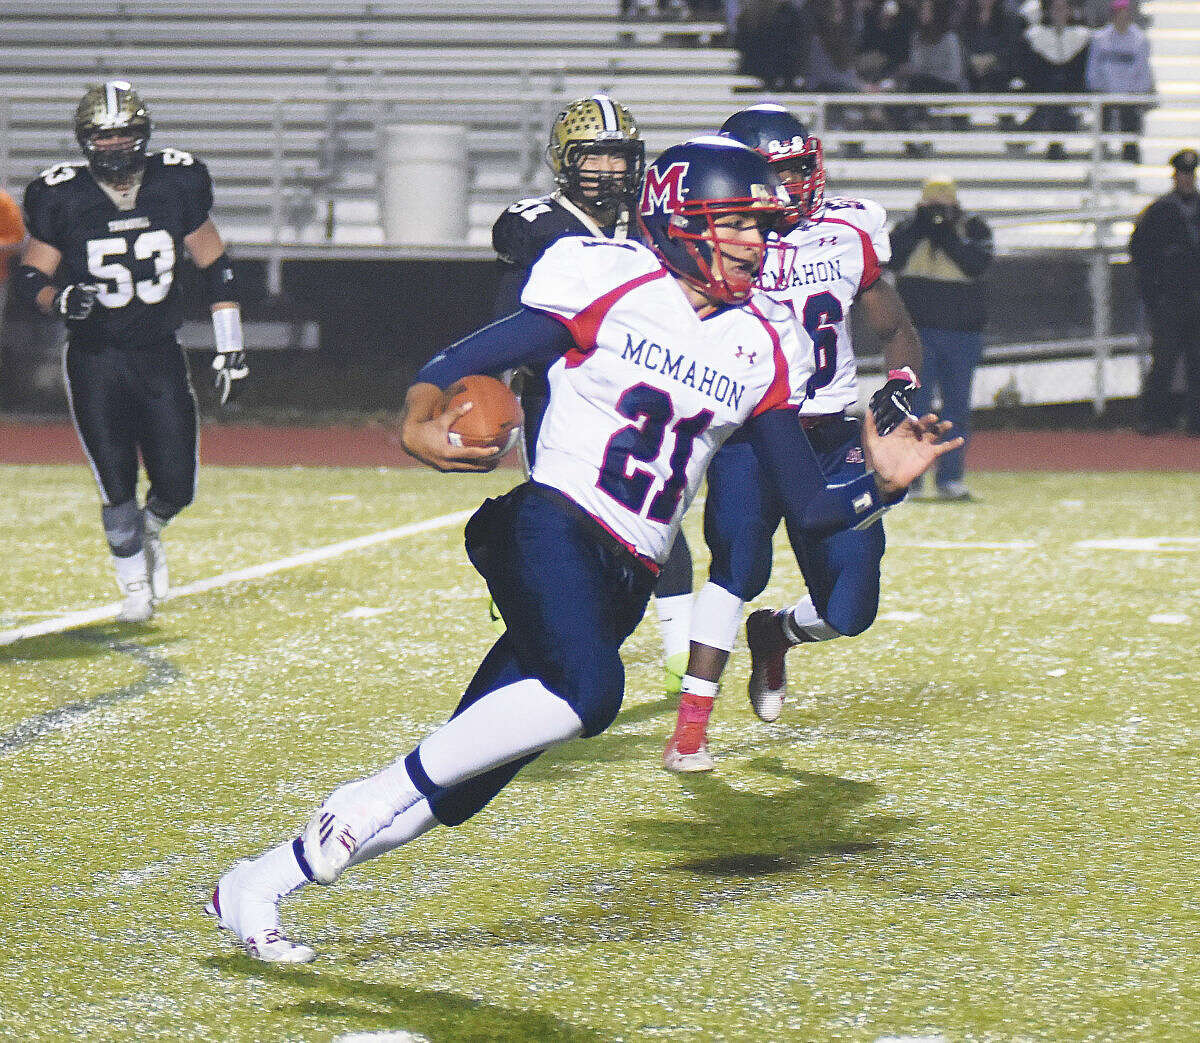 McMahon quarterback Chris Druin looks for running room after getting chased from the pocket during Friday night's game at McDougal Stadium in Trumbull. The host Eagles won, 33-17. (Hour photo/John Nash)